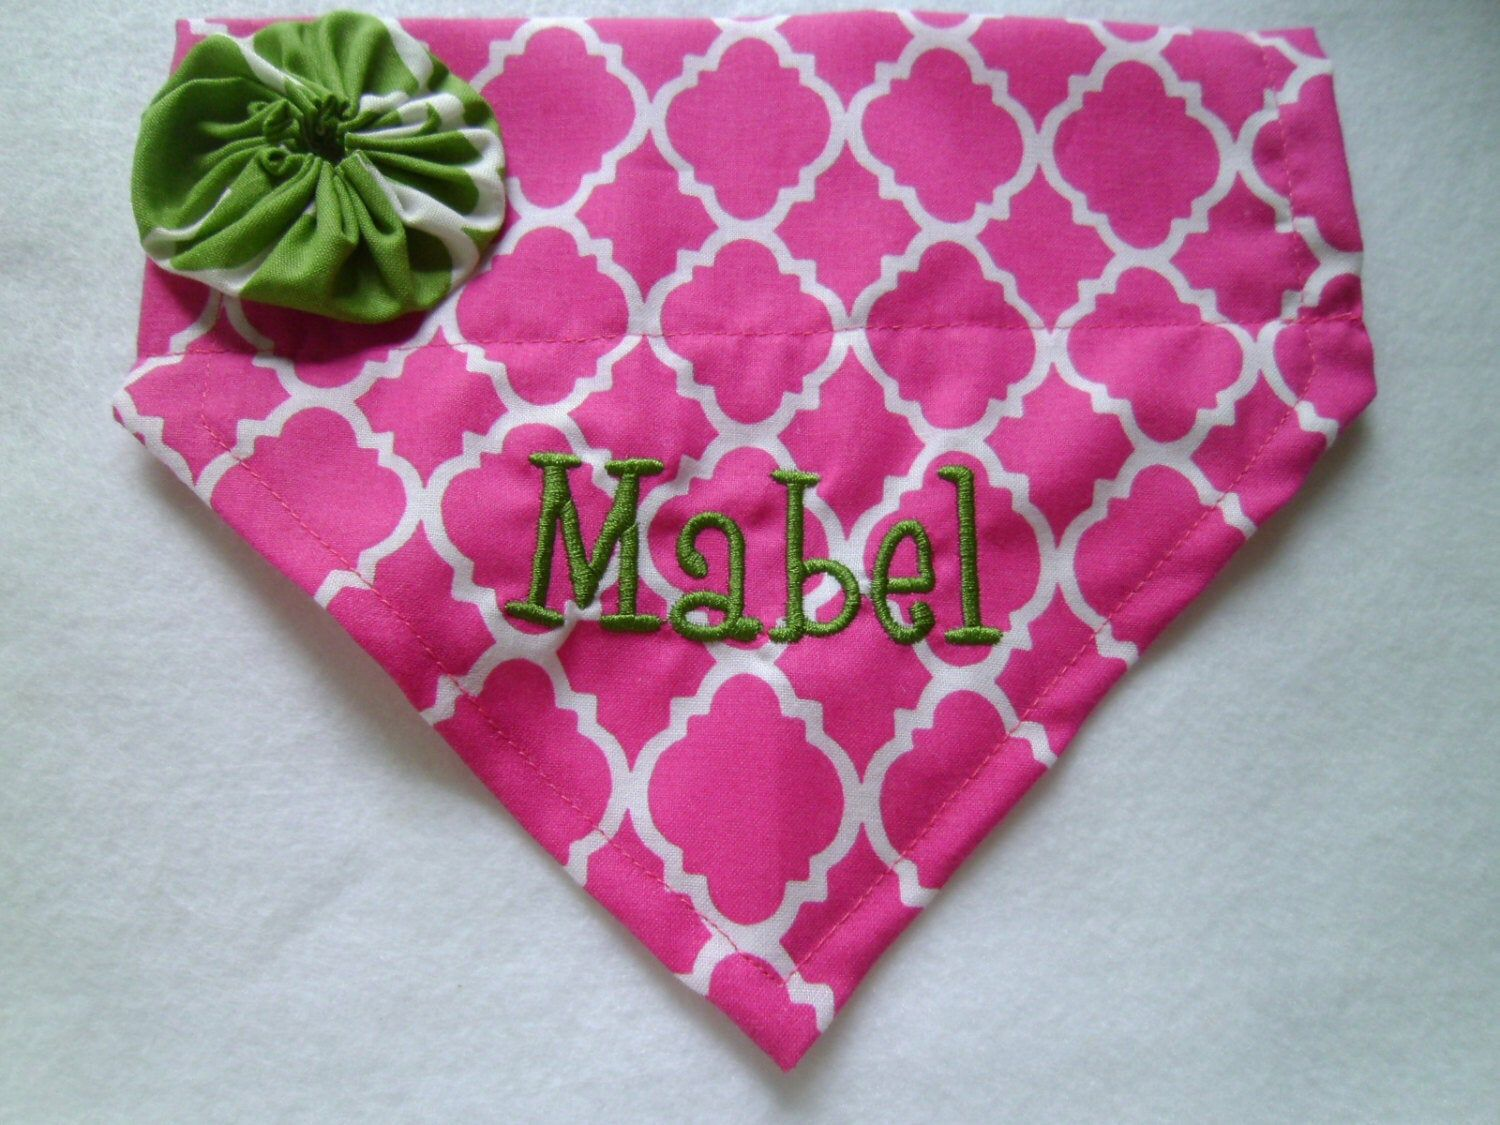 Photo of Personalized Dog Bandana, Pink, Slides Over the Collar, Dog lovers gift, new puppy, photo shoot, dog presen